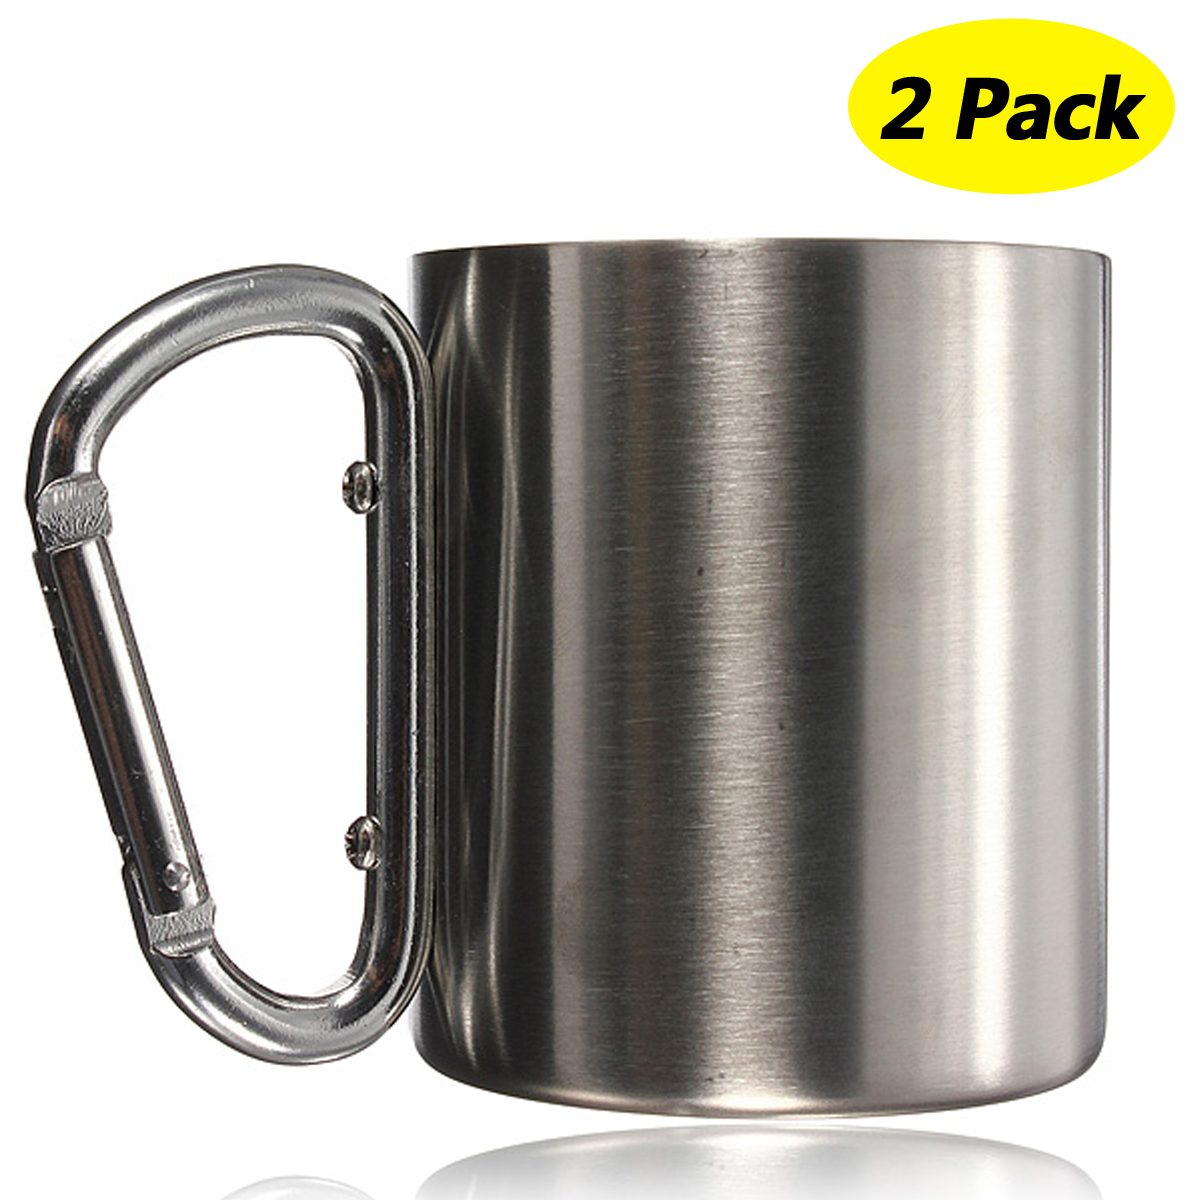 2-Pack 220ML Stainless Steel Coffee Mug Outdoor Camping Cup Carabiner Hook Double Wall For Camping Hiking